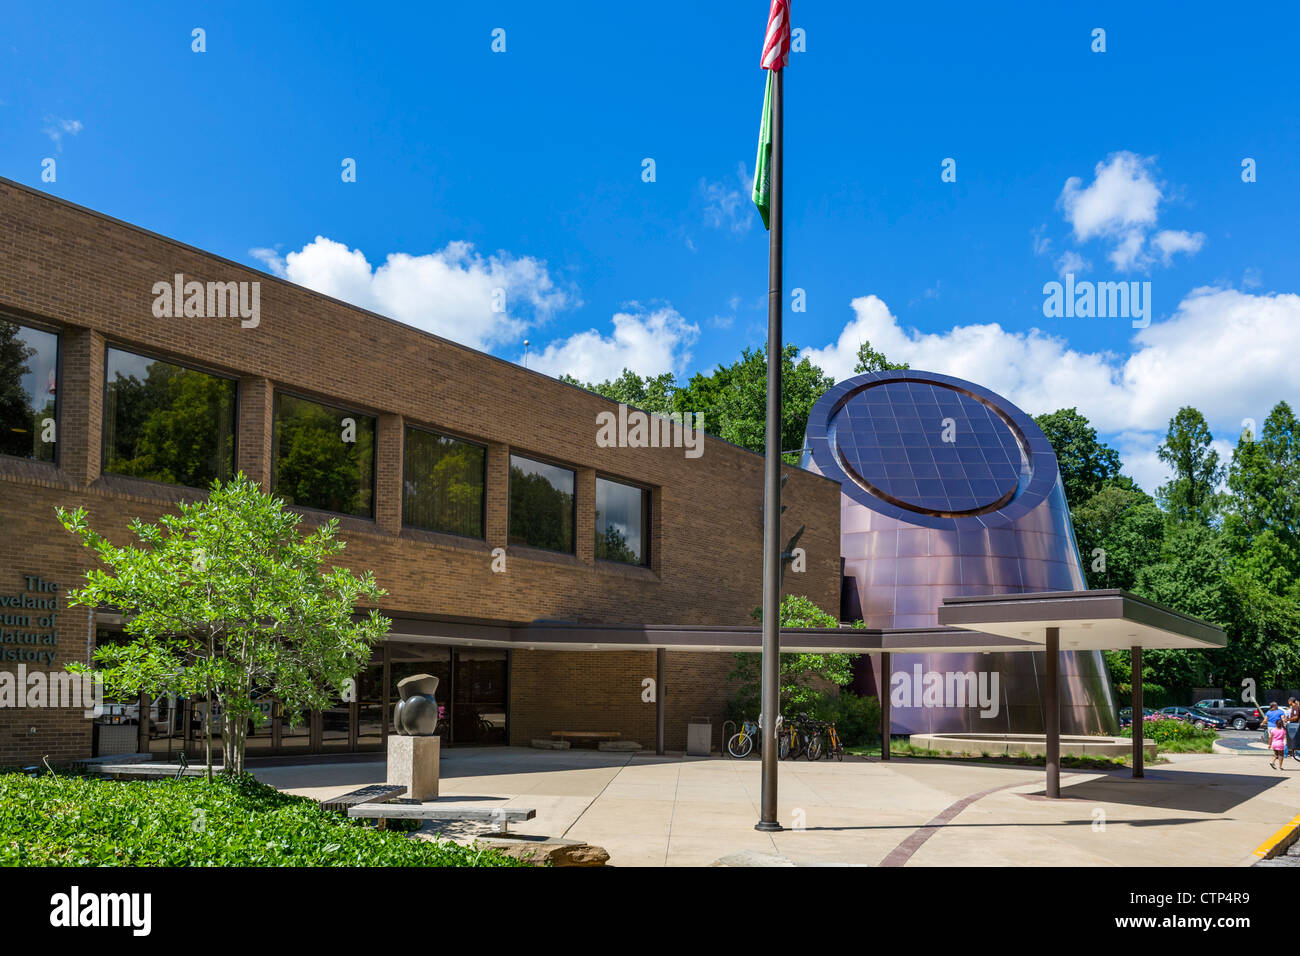 Cleveland Museum of Natural History, University Circle district, Ohio, USA - Stock Image